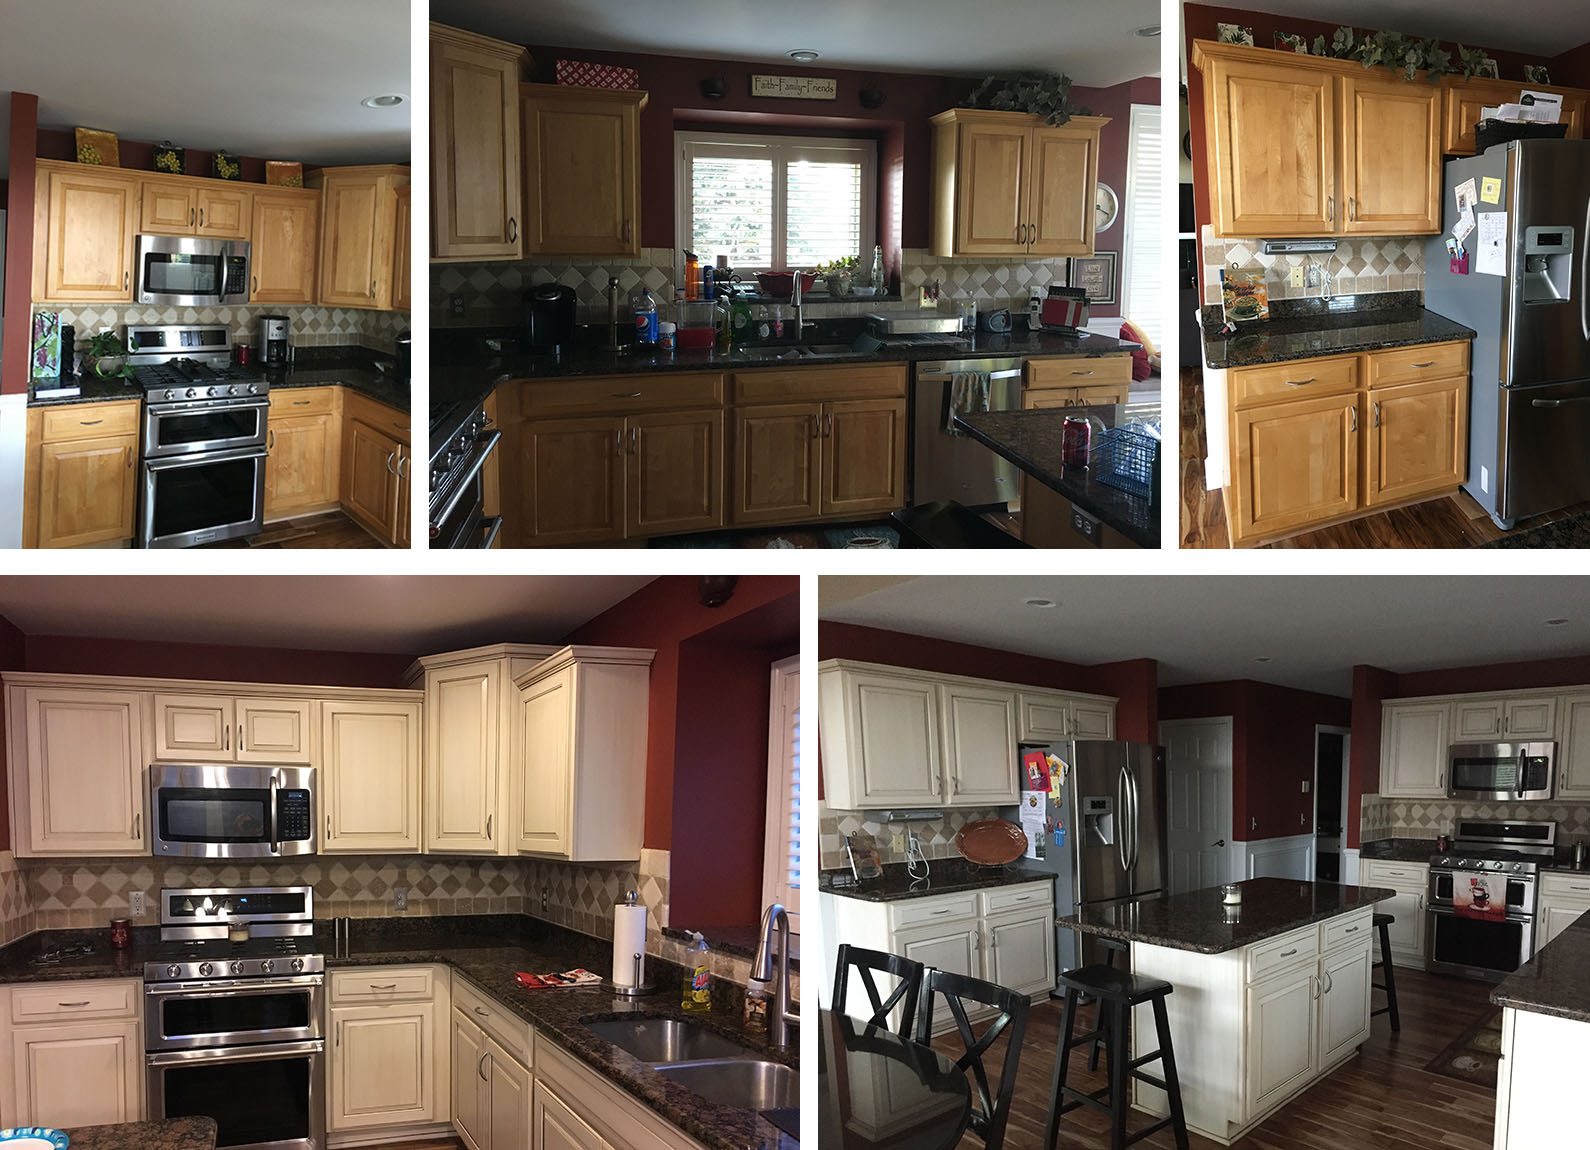 Kitchen Cabinet Refinishing in Macomb Township Michigan